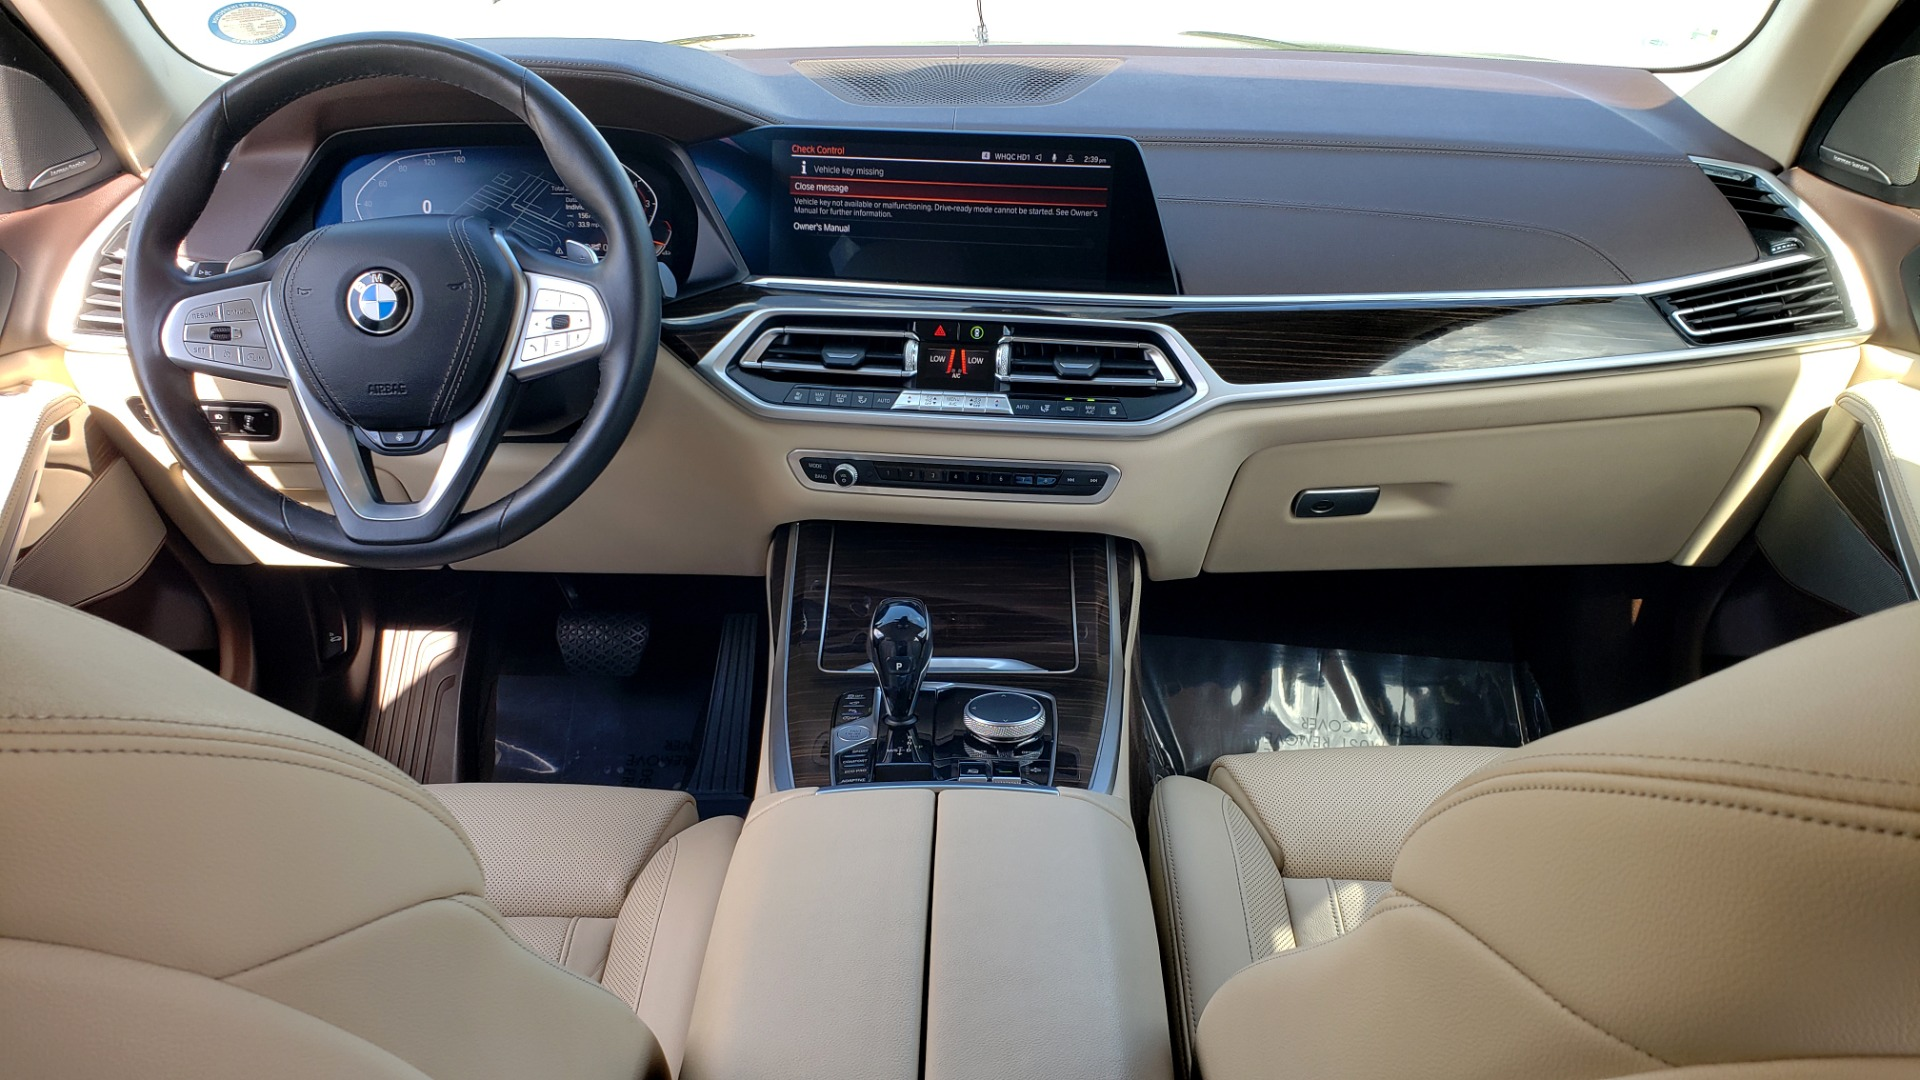 Used 2019 BMW X7 XDRIVE40I PREMIUM / LUXURY / COLD WEATHER / PARK ASST / PANORAMIC SKY / TOW for sale $75,999 at Formula Imports in Charlotte NC 28227 97